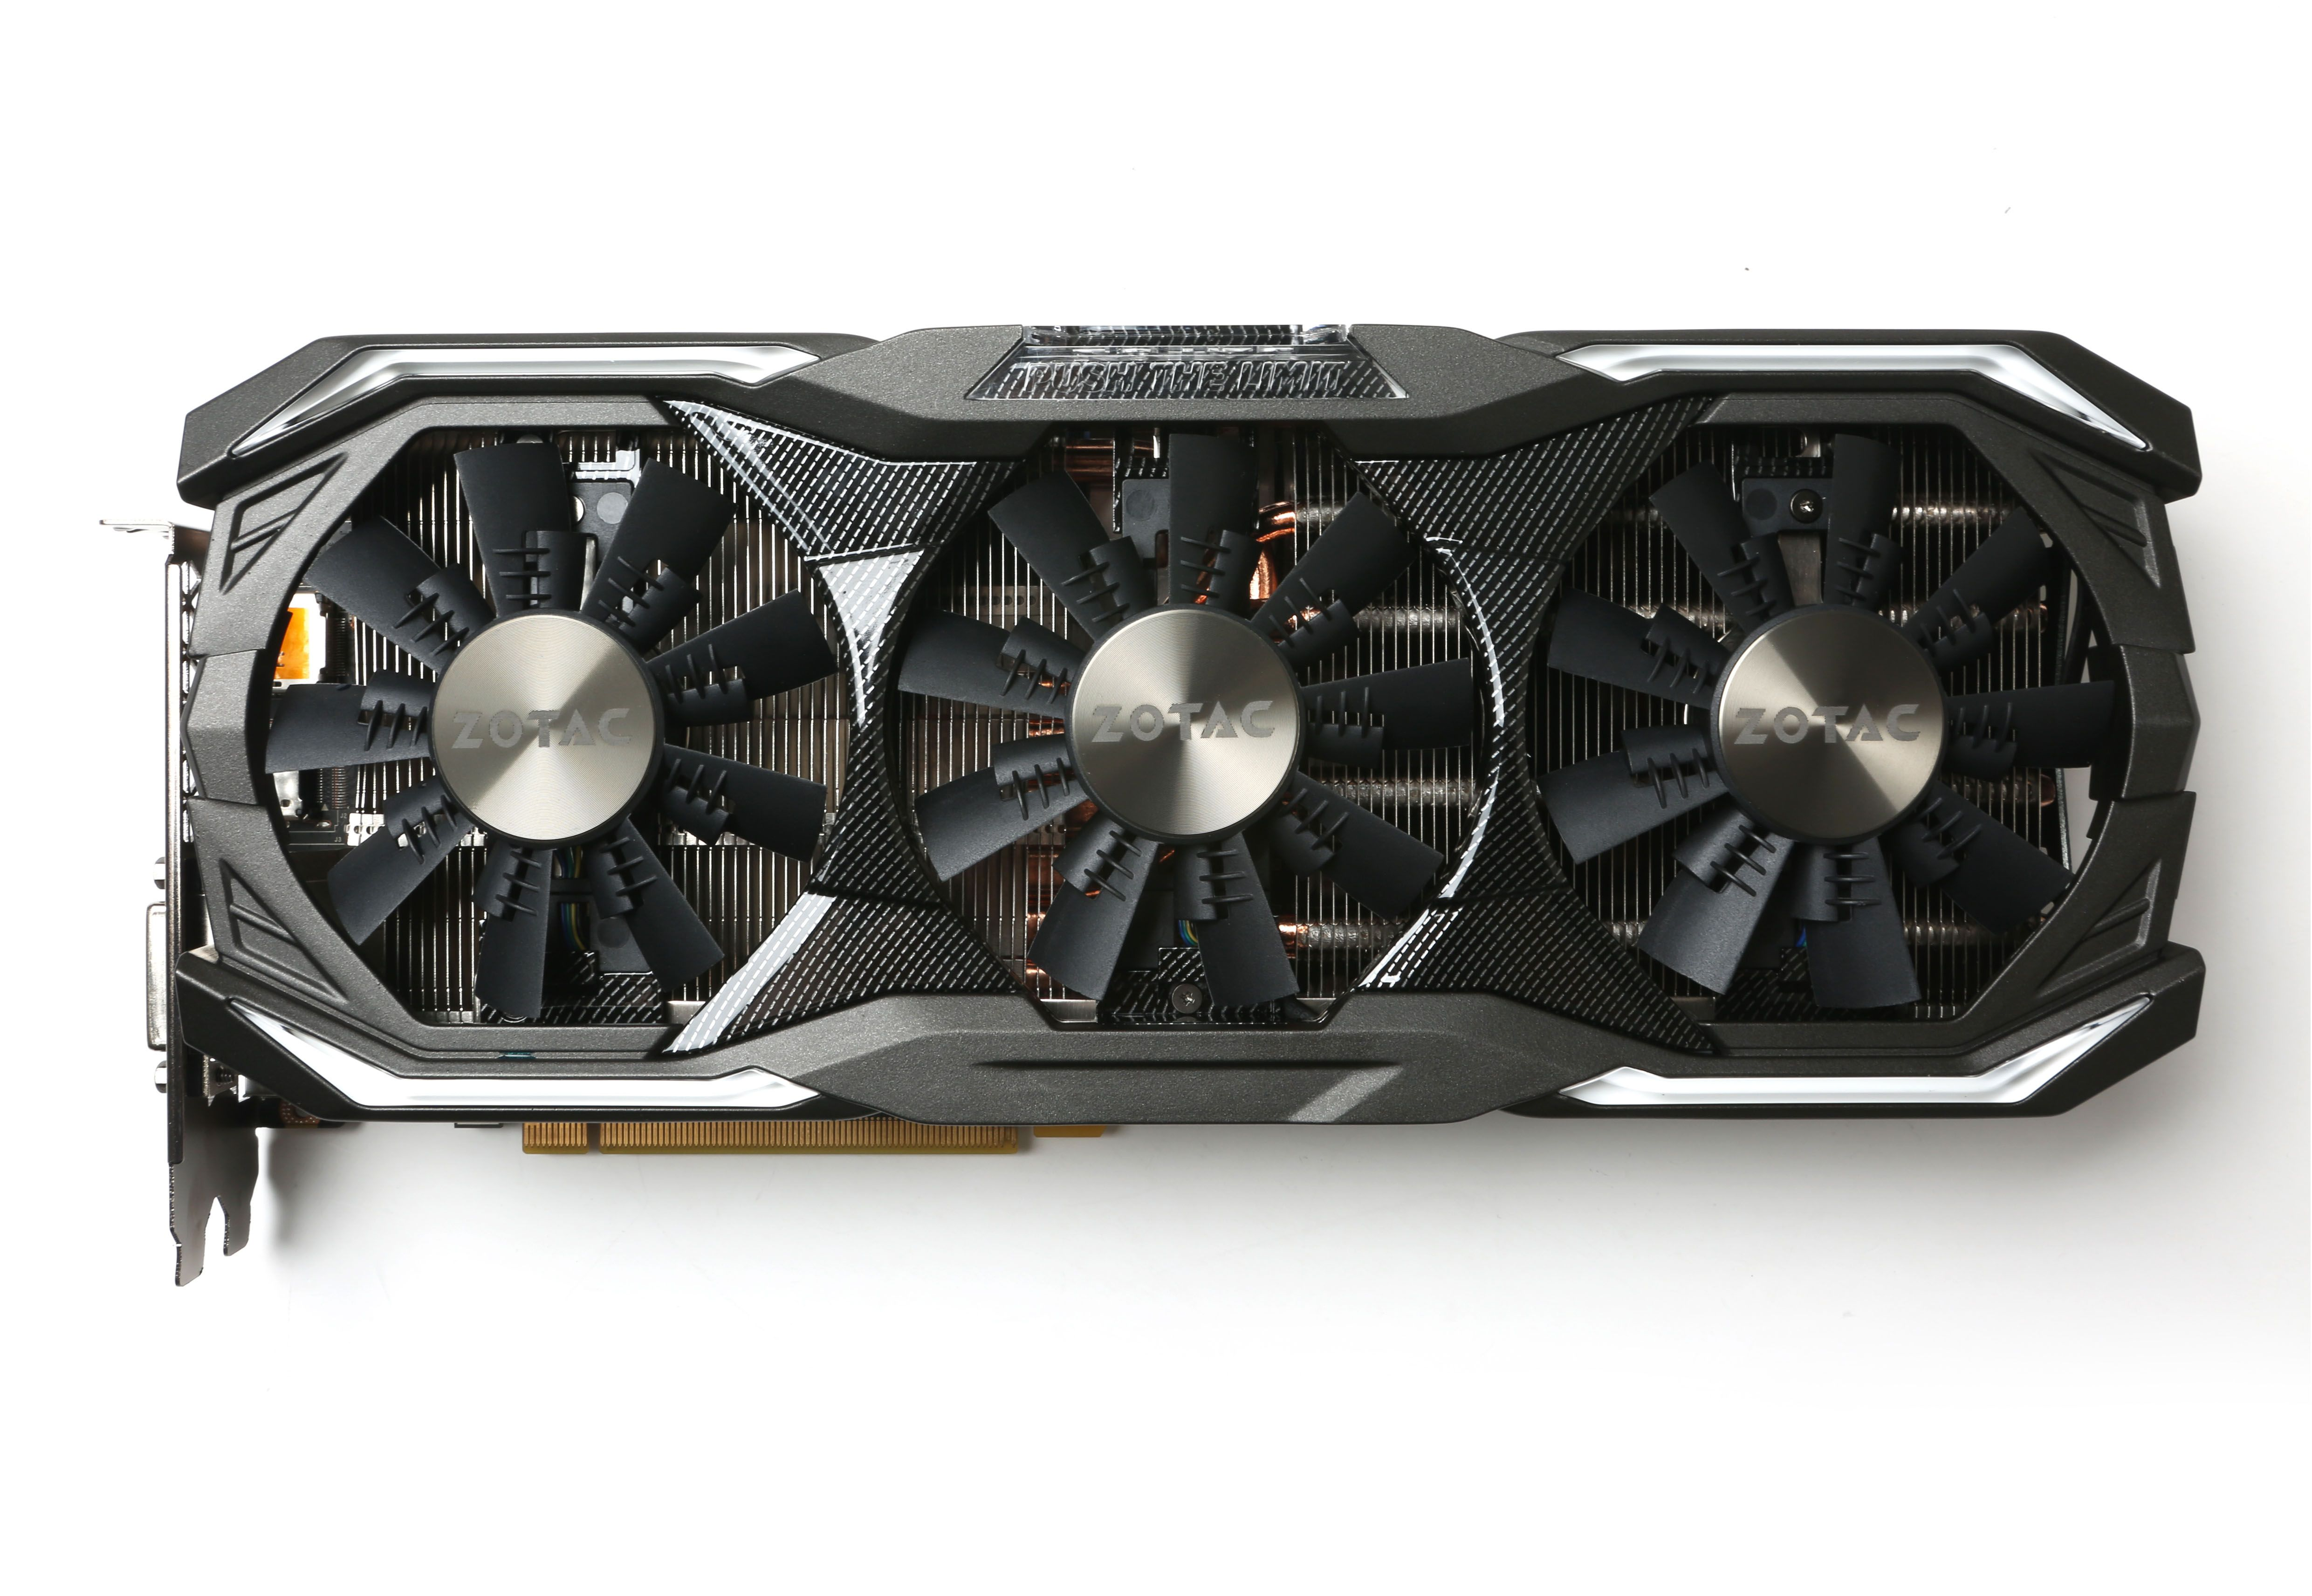 Zotac Launch Amp Extreme Amp Edition And Mini Nvidia Geforce Gtx 1070 Ti Based Cards Video Card Gaming Accessories Computer Hardware